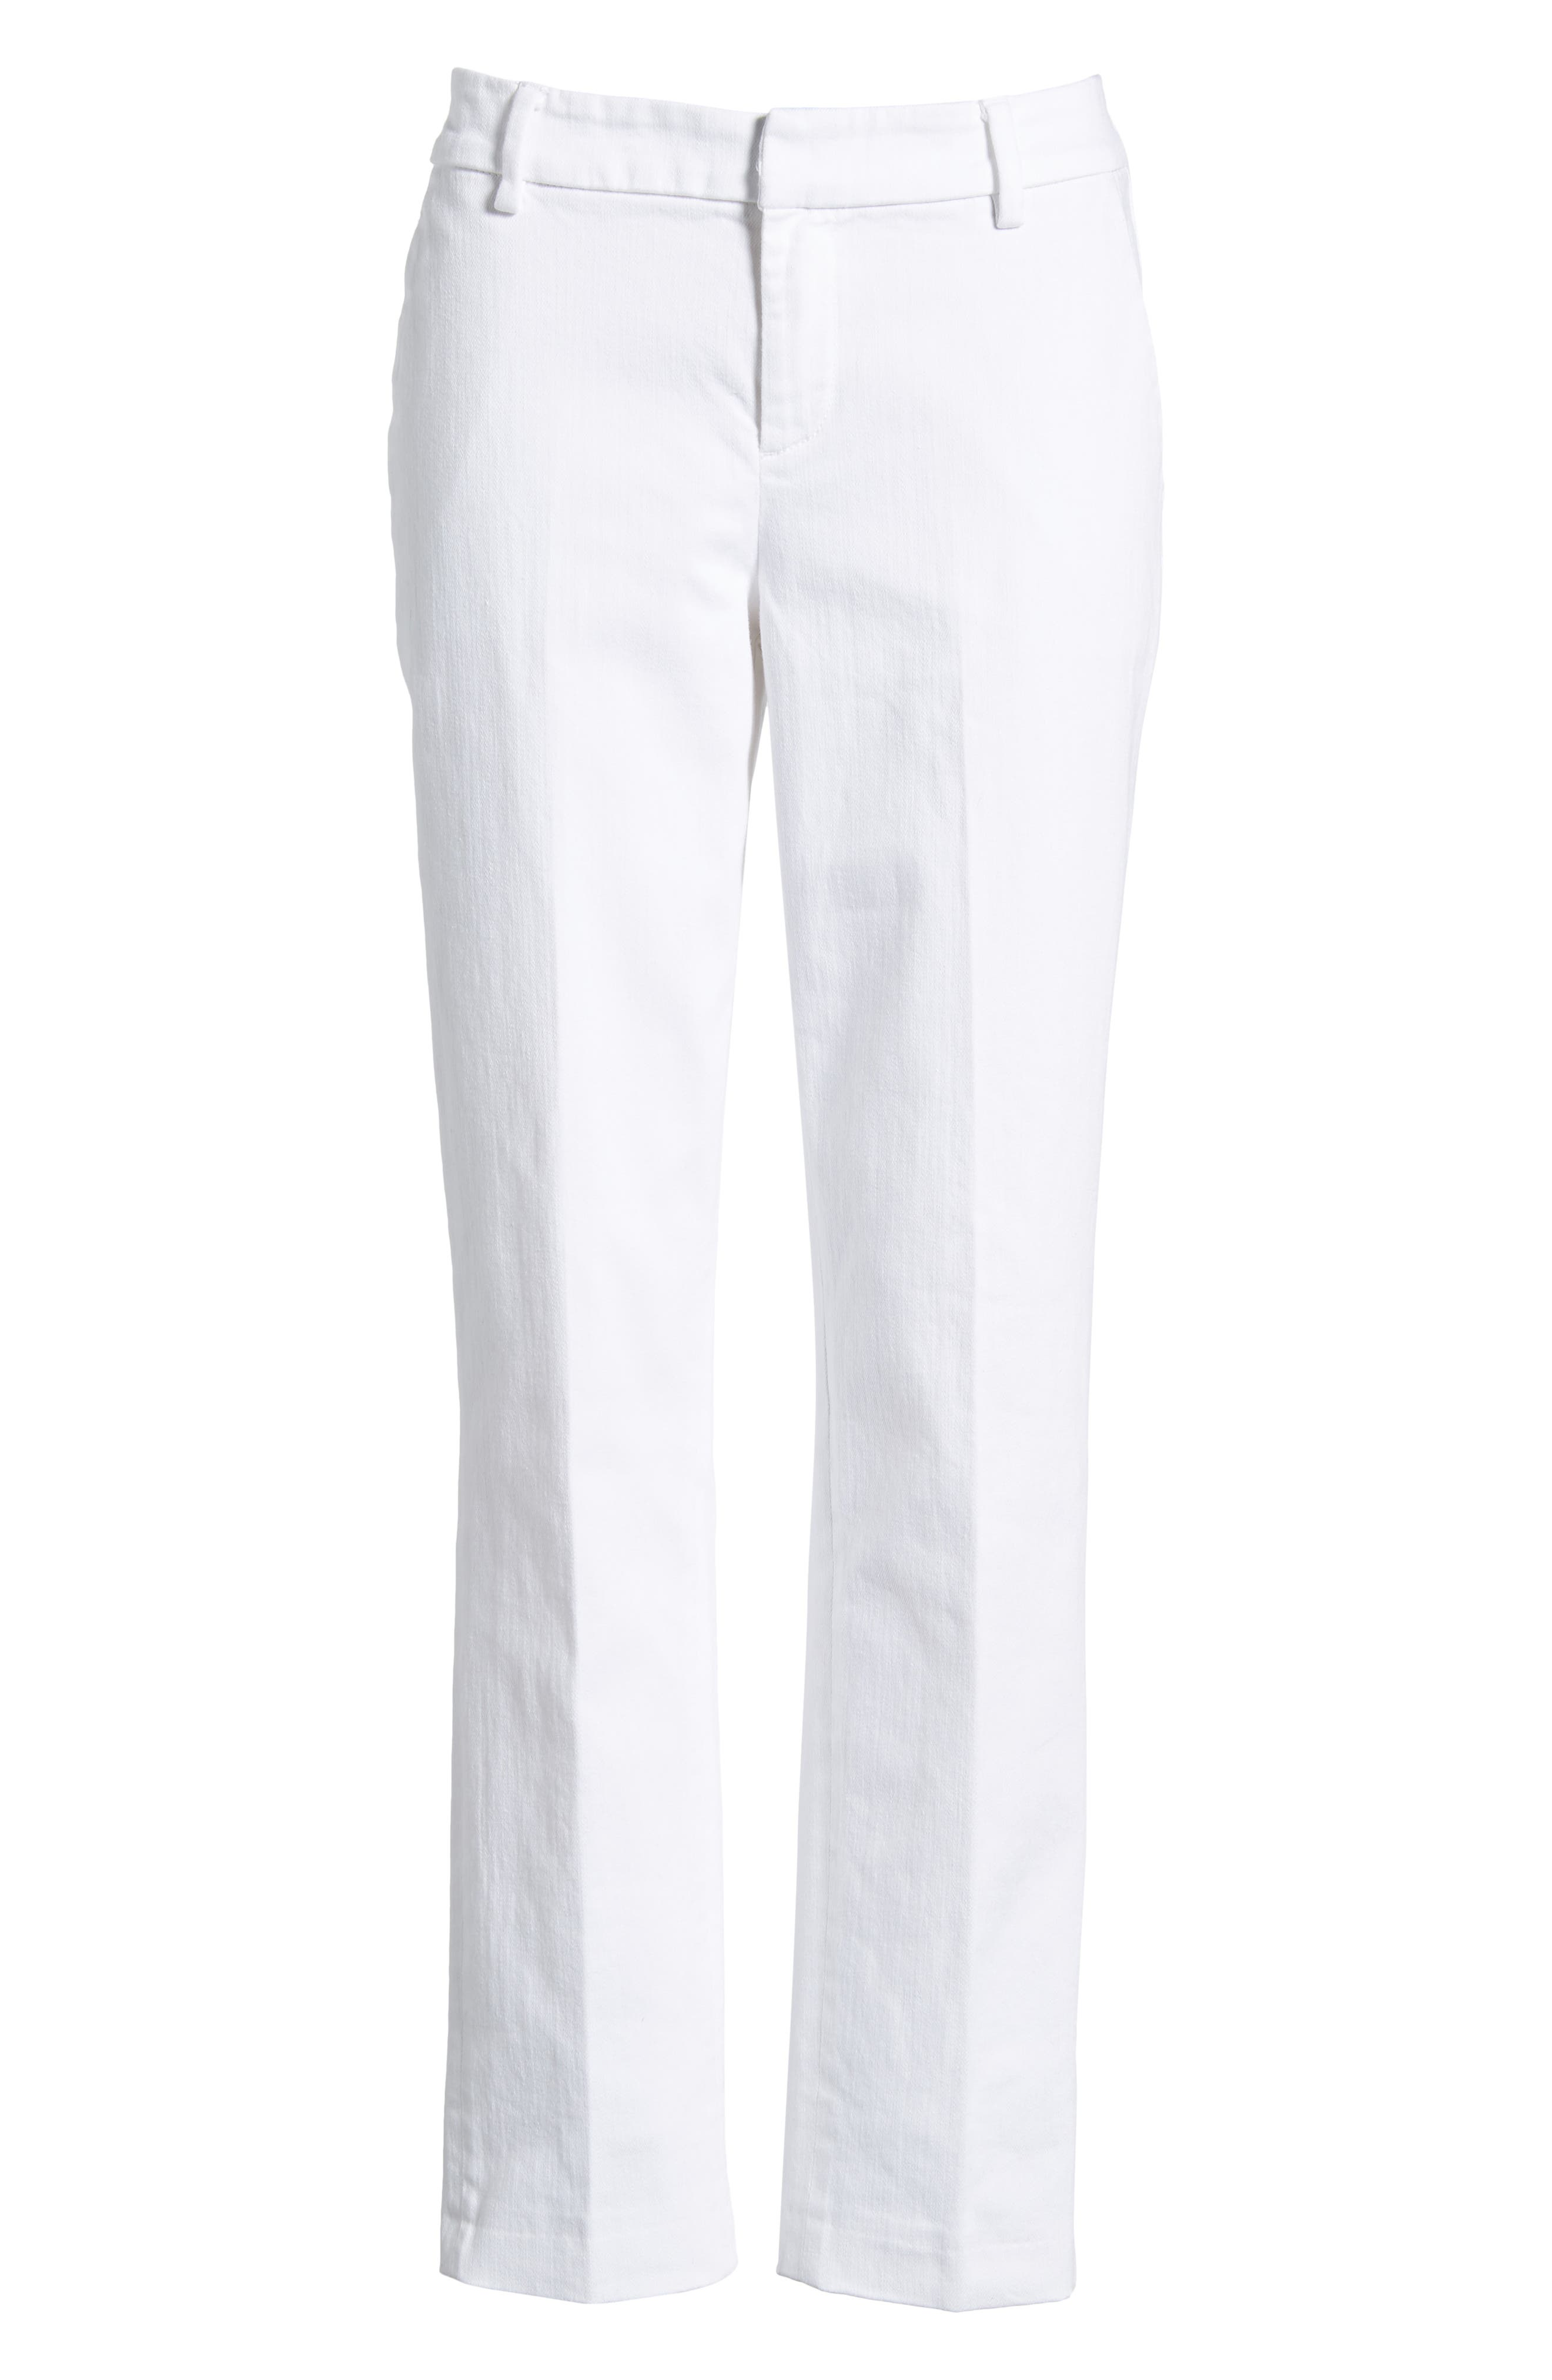 Kelsey Trousers,                             Alternate thumbnail 6, color,                             Bright White